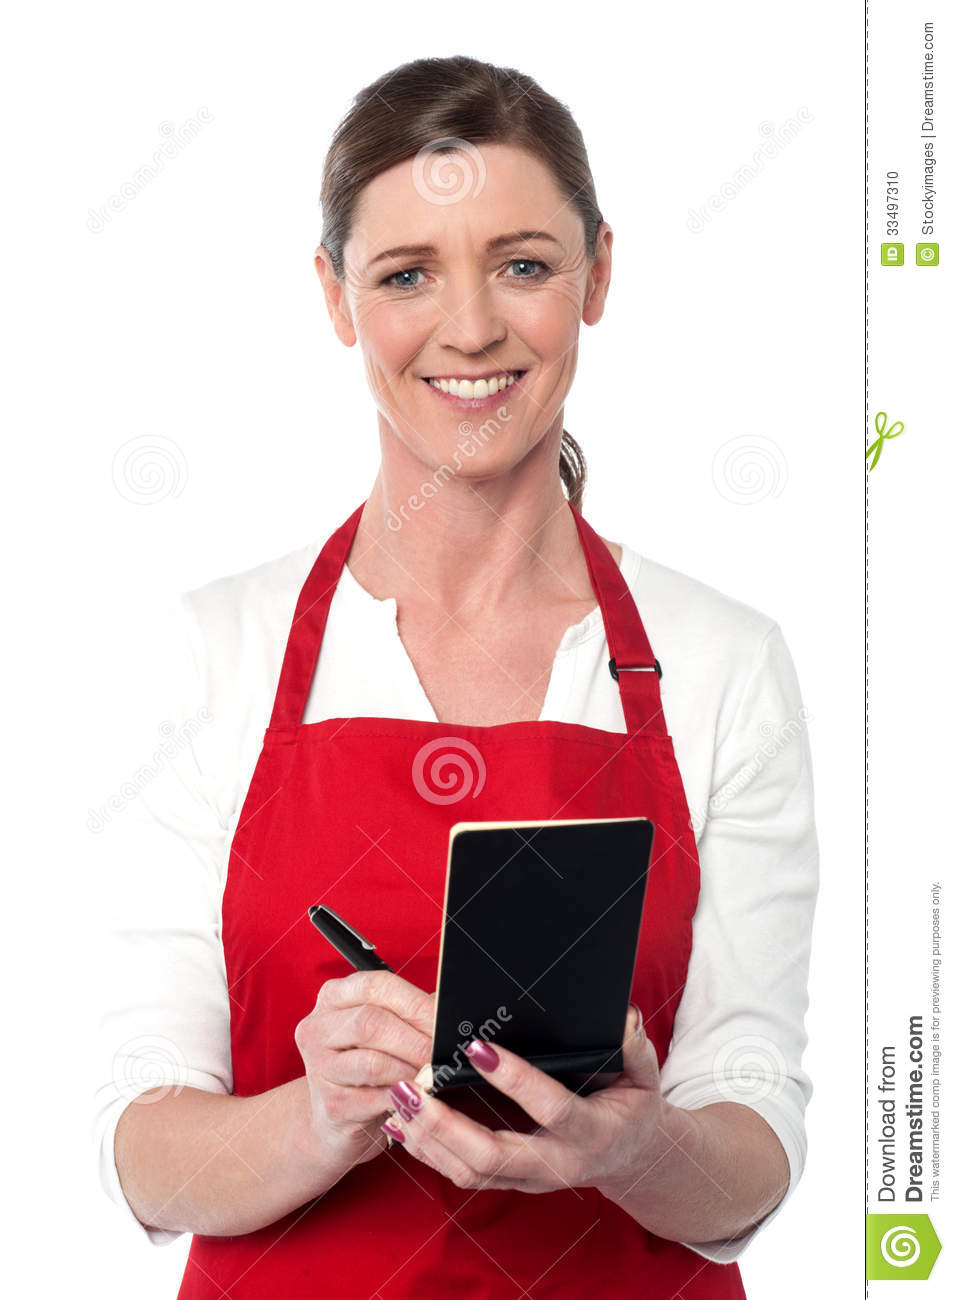 Food catering business plans